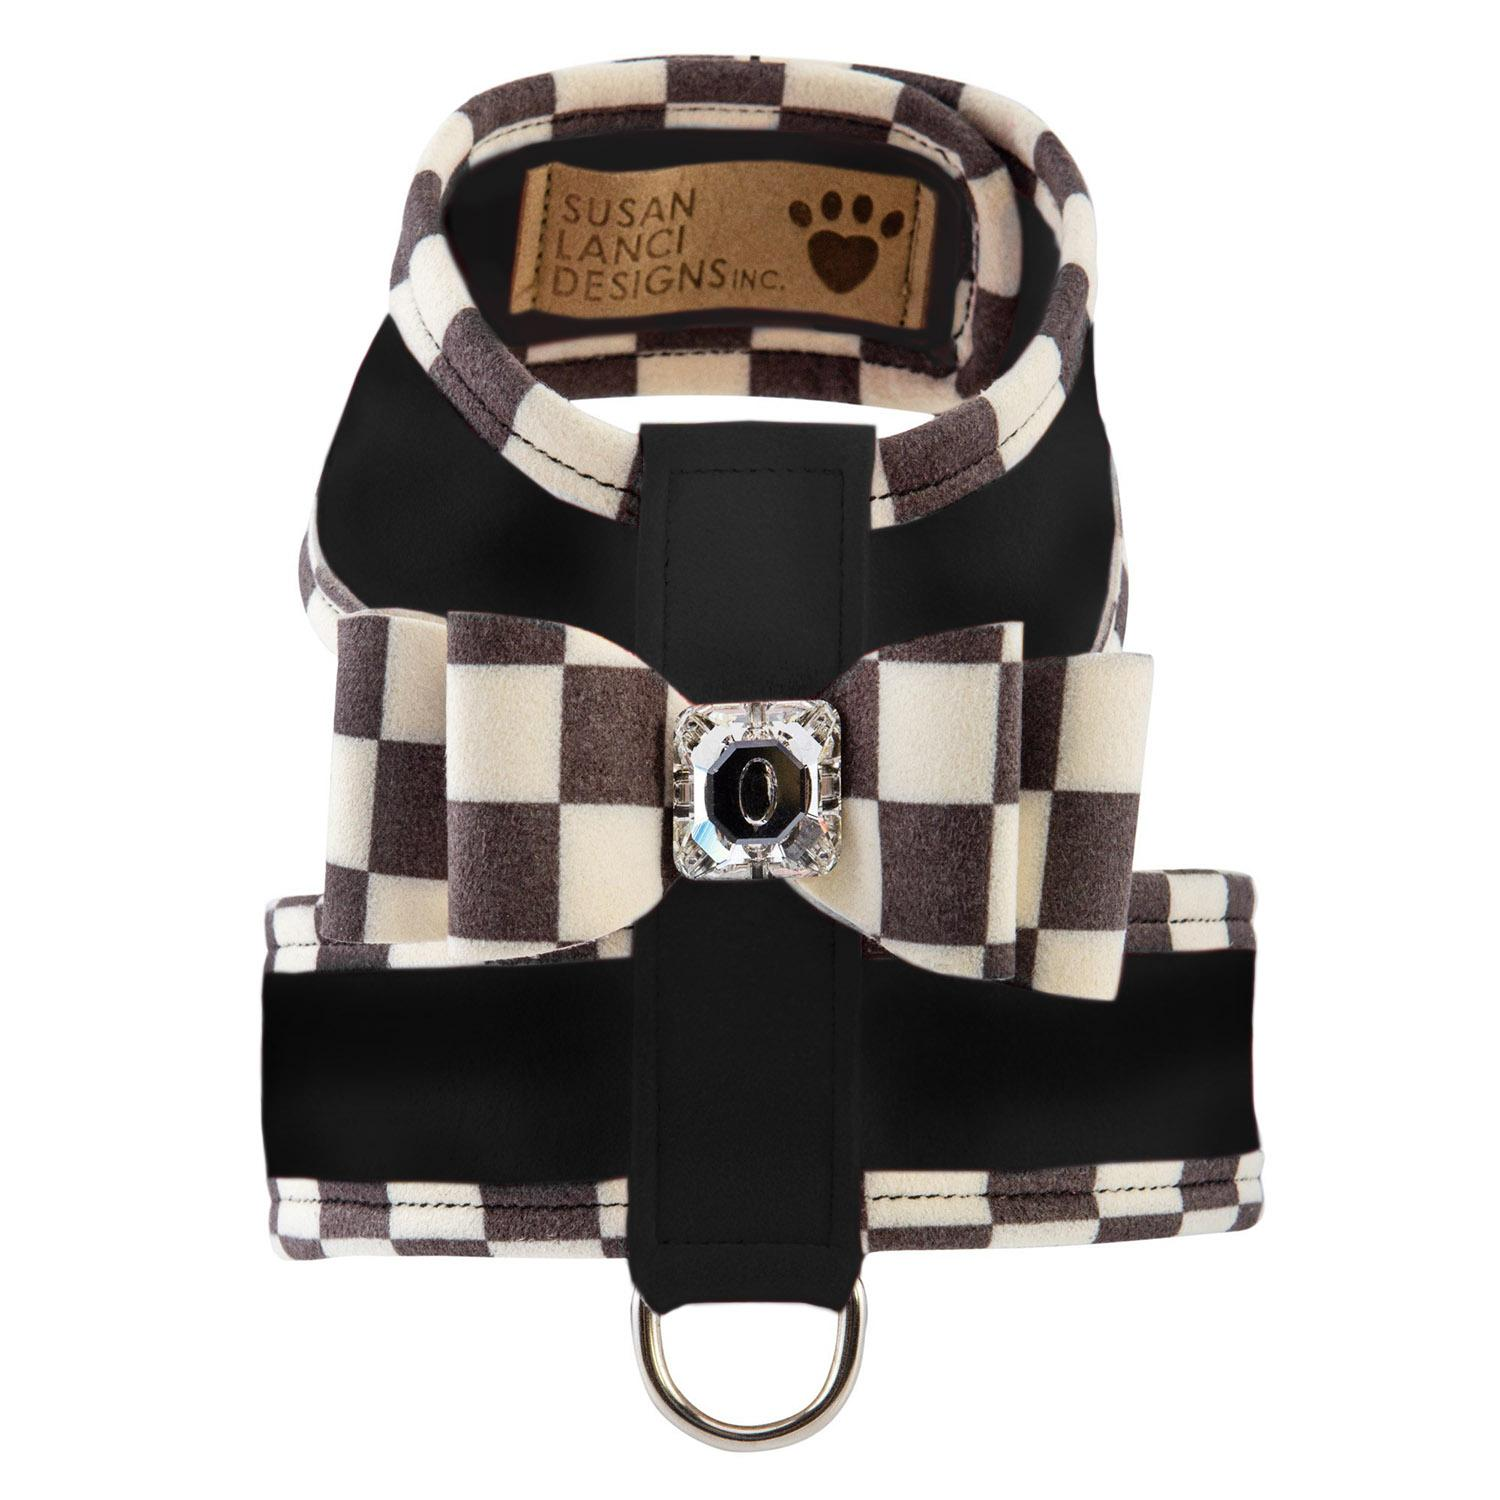 Tinkie Dog Harness with Windsor Big Bow & Trim by Susan Lanci - Black